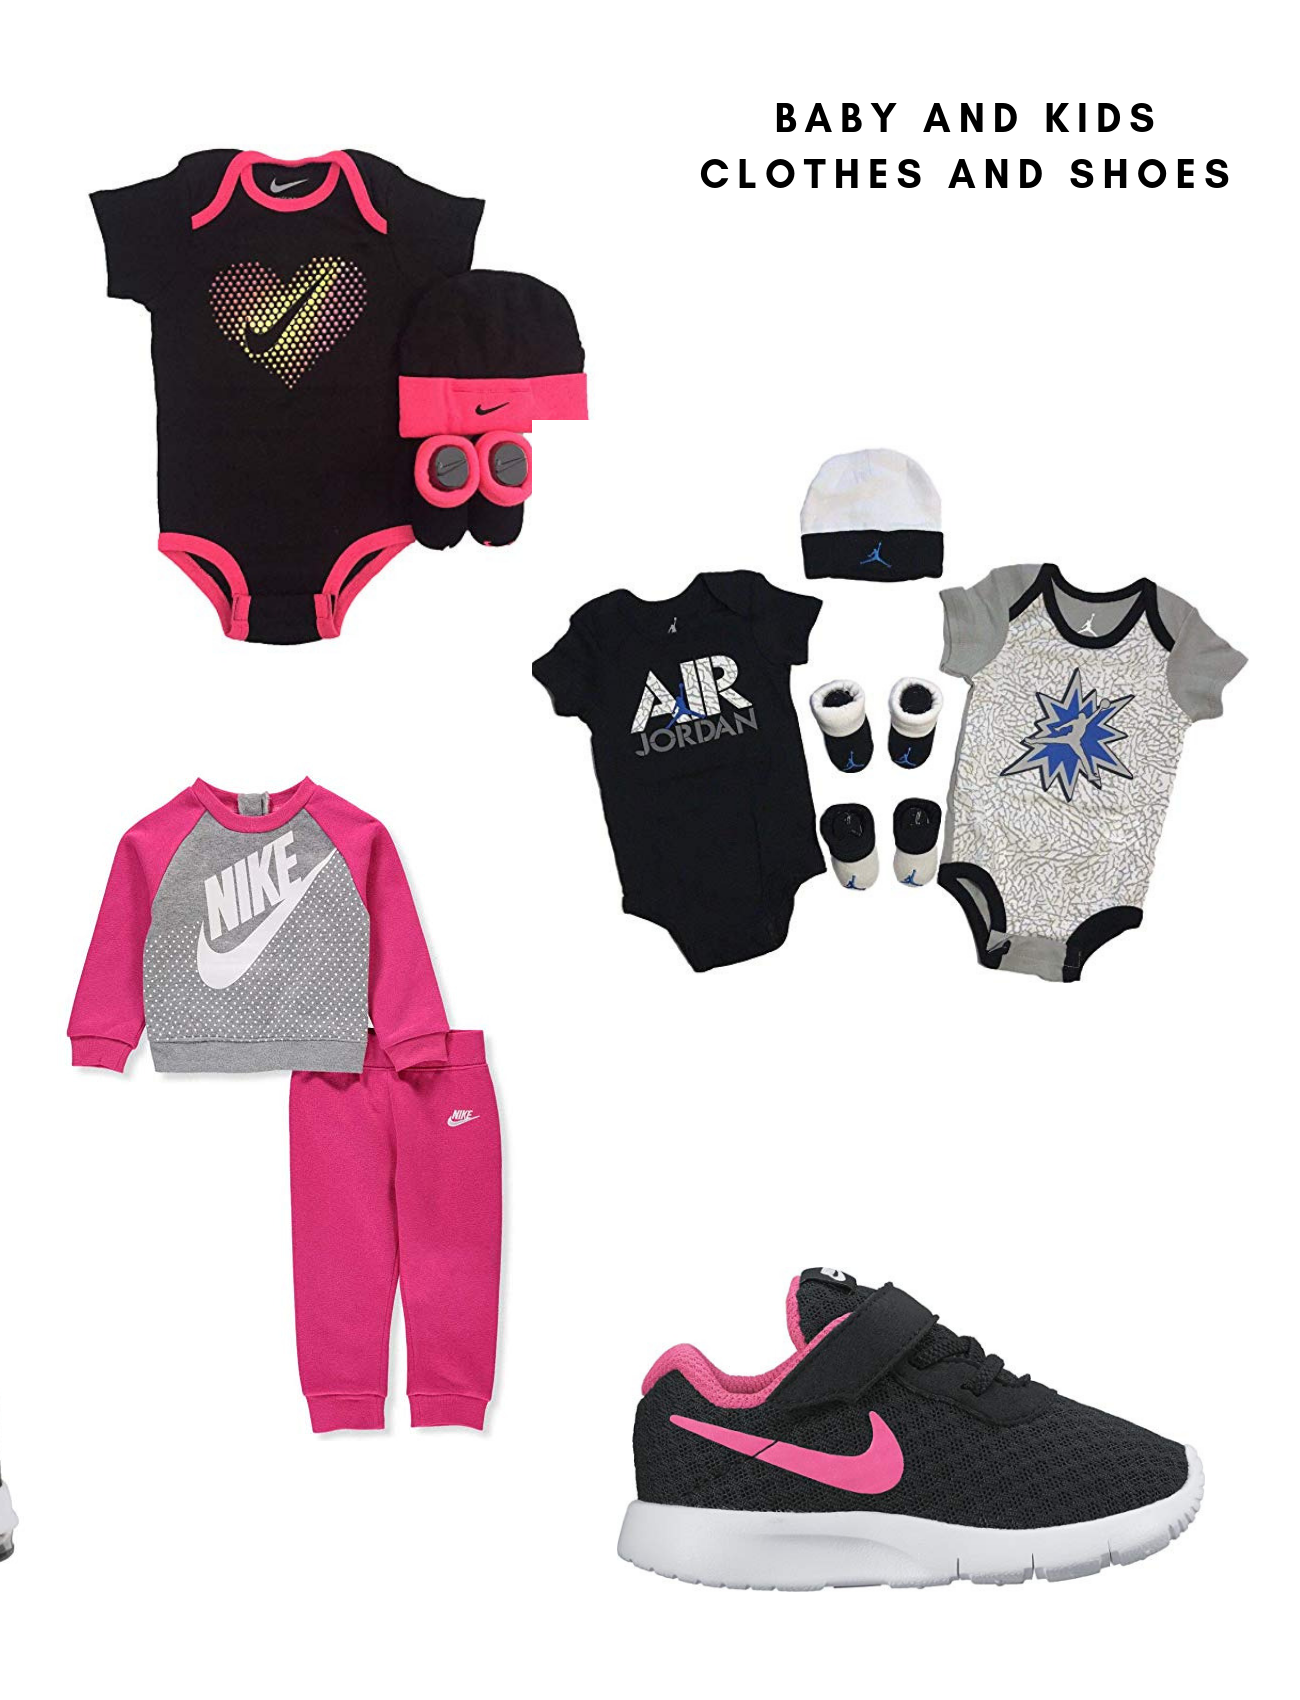 Baby and Kids Clothes and Shoes   Cute